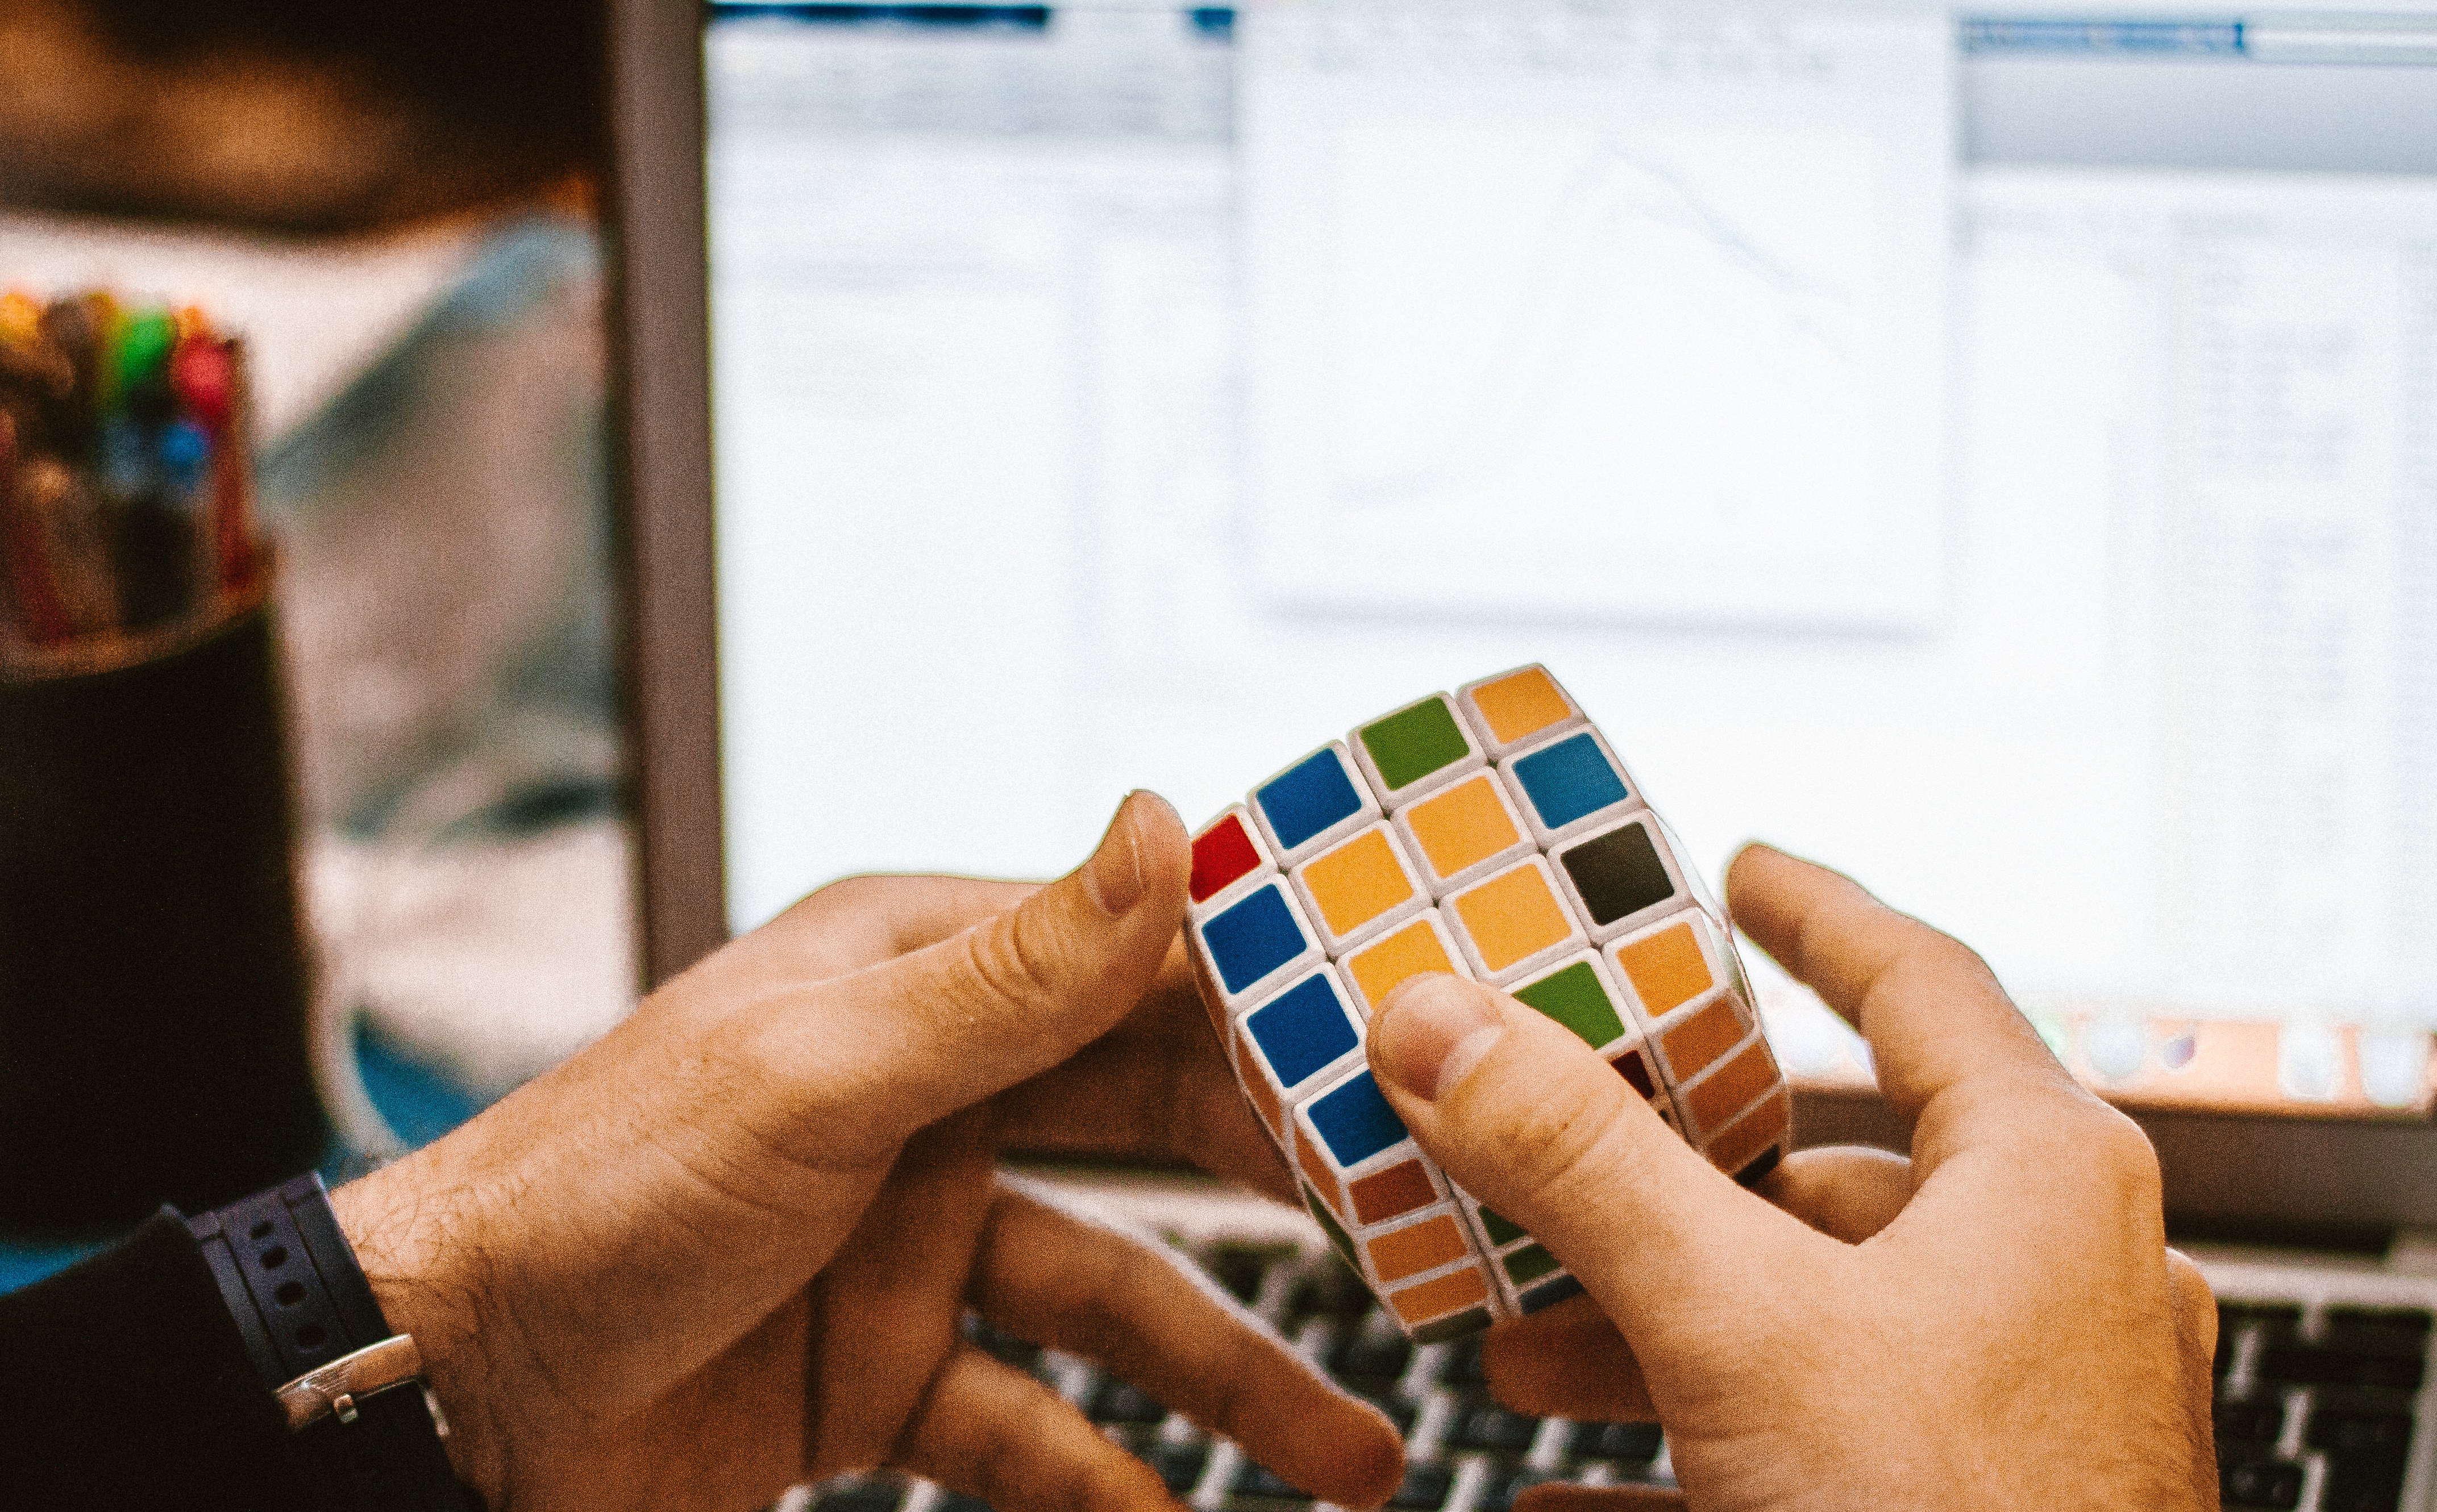 Man playing with a rubiks cube in front of a computer at a desk.